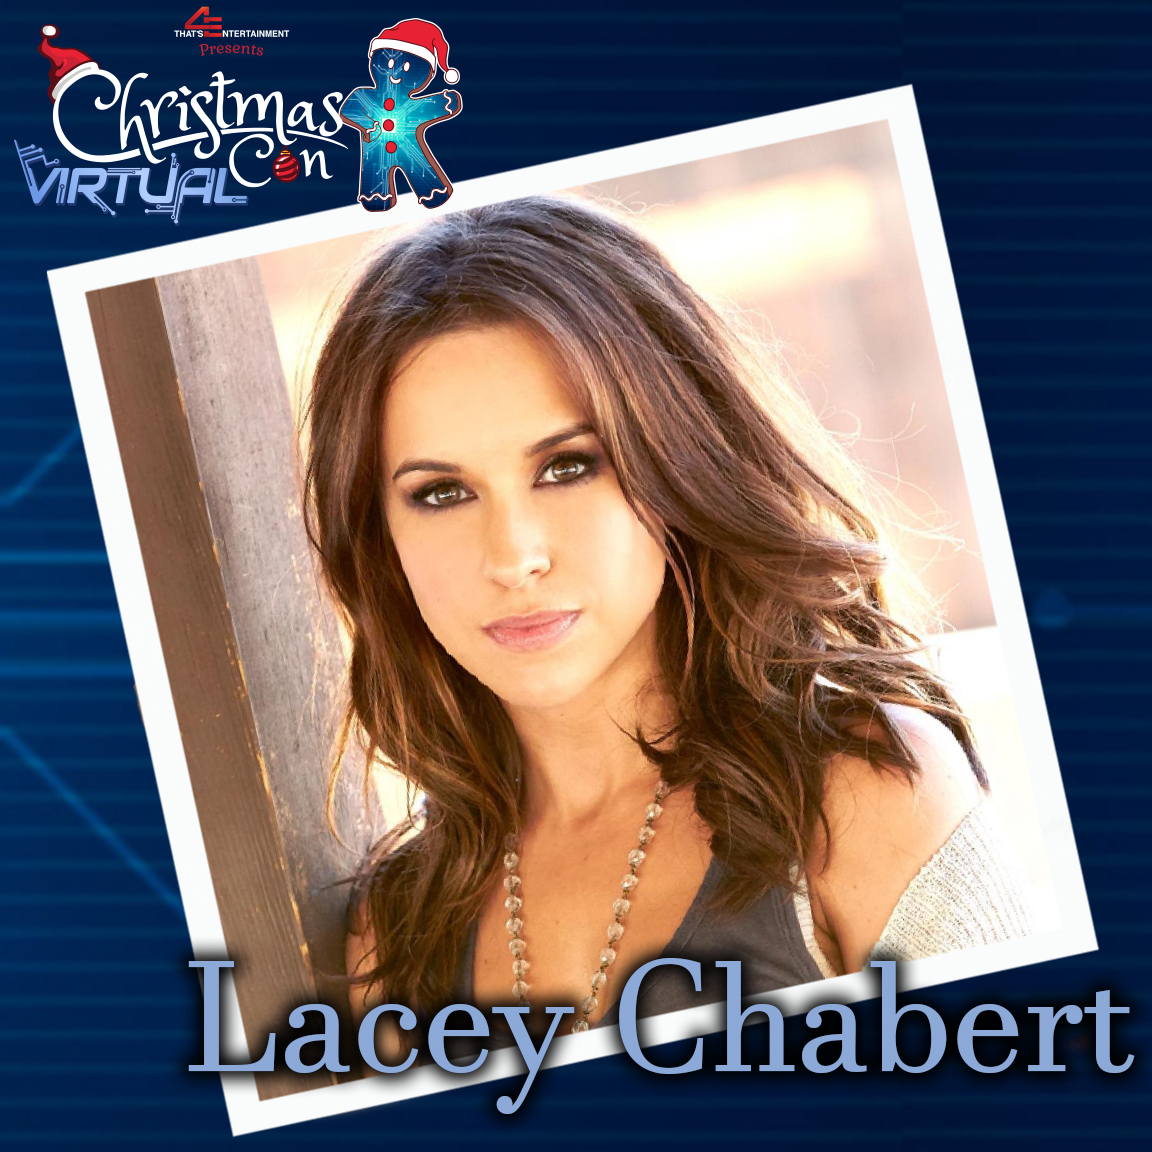 💙👑  So happy to announce that our beautiful headliner, Lacey Chabert, will be joining Christmas Con Virtual for autographs only!    ✍🏻 To purchase autographs, head to our website  now!⠀